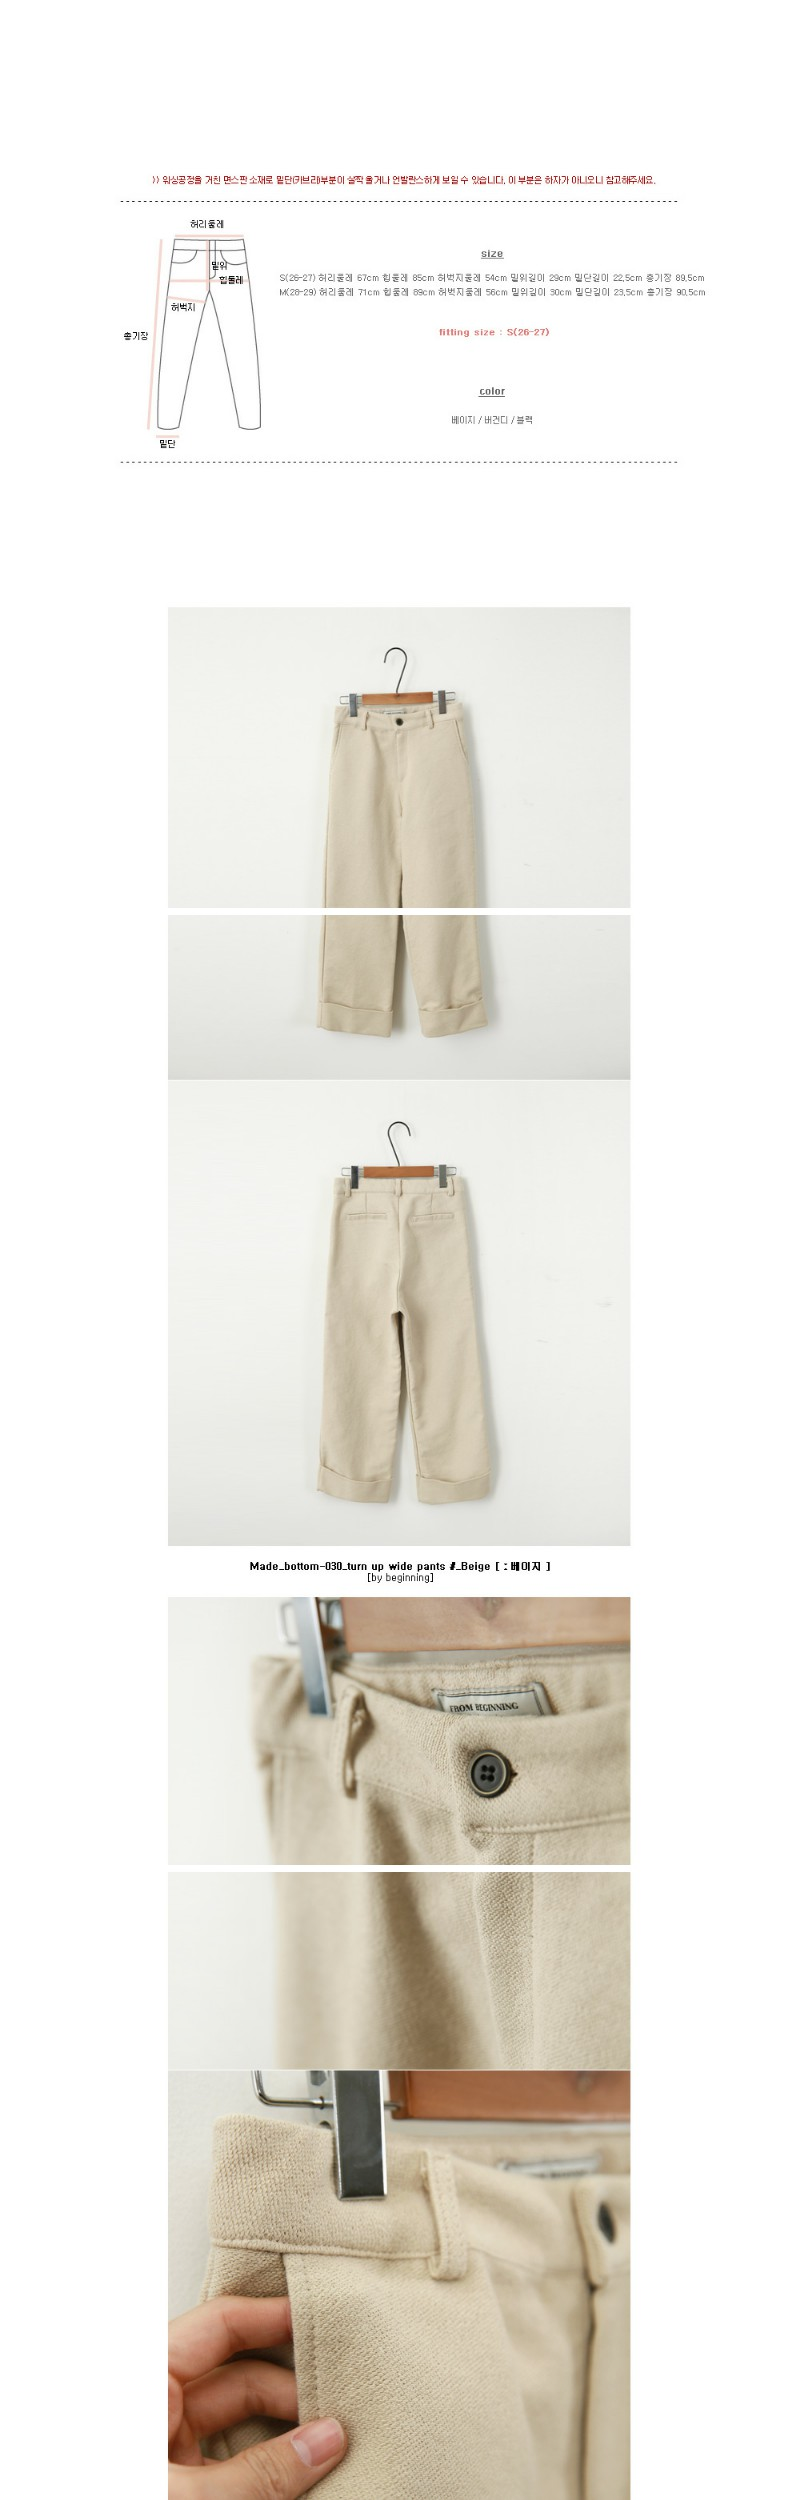 Made_bottom-030_turn up wide pants